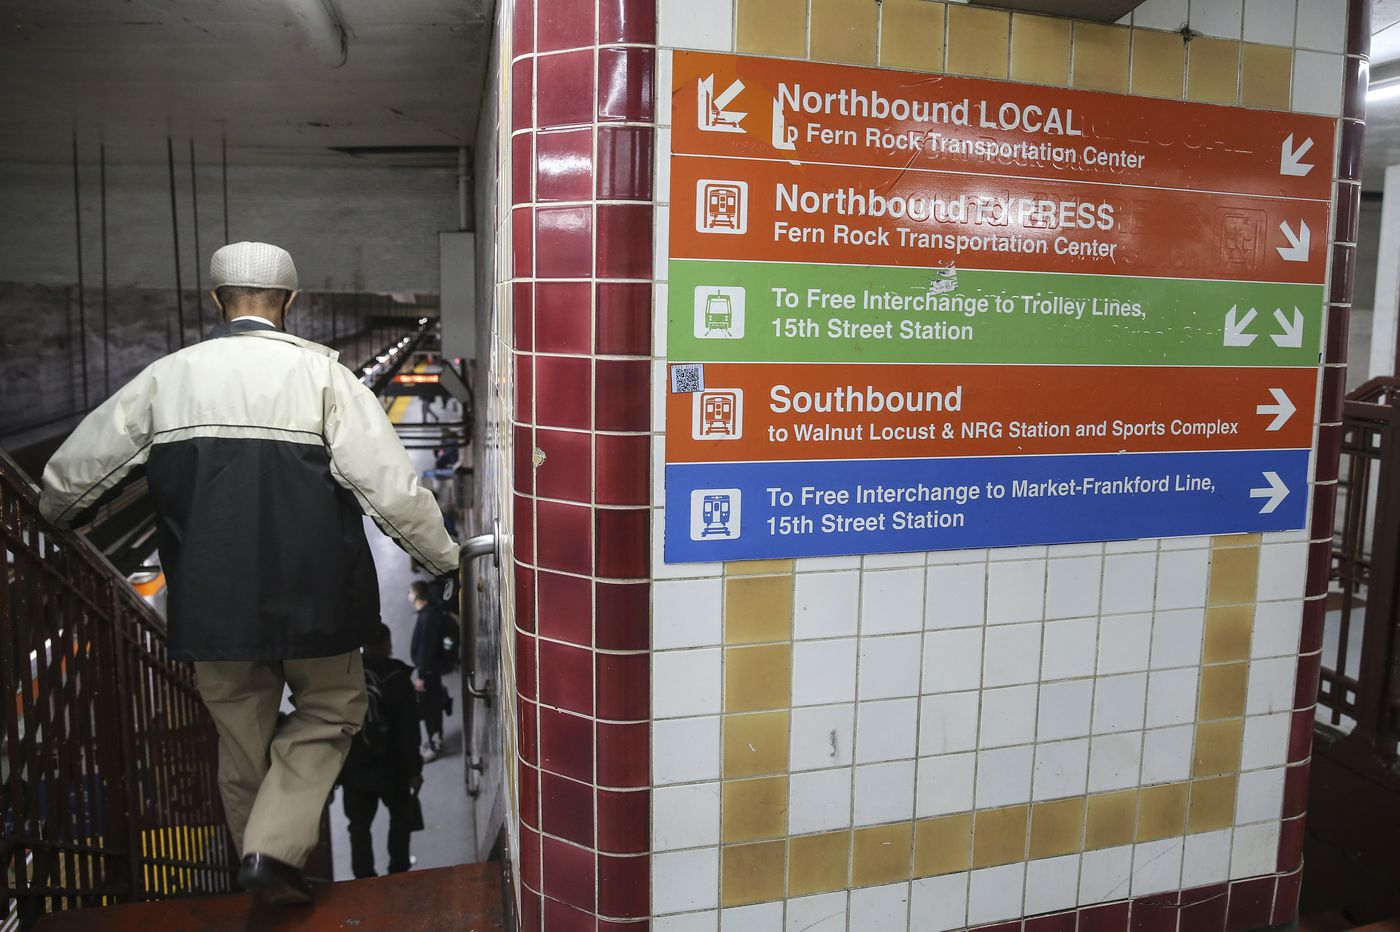 Only Philadelphians can navigate SEPTA. That's going to change.